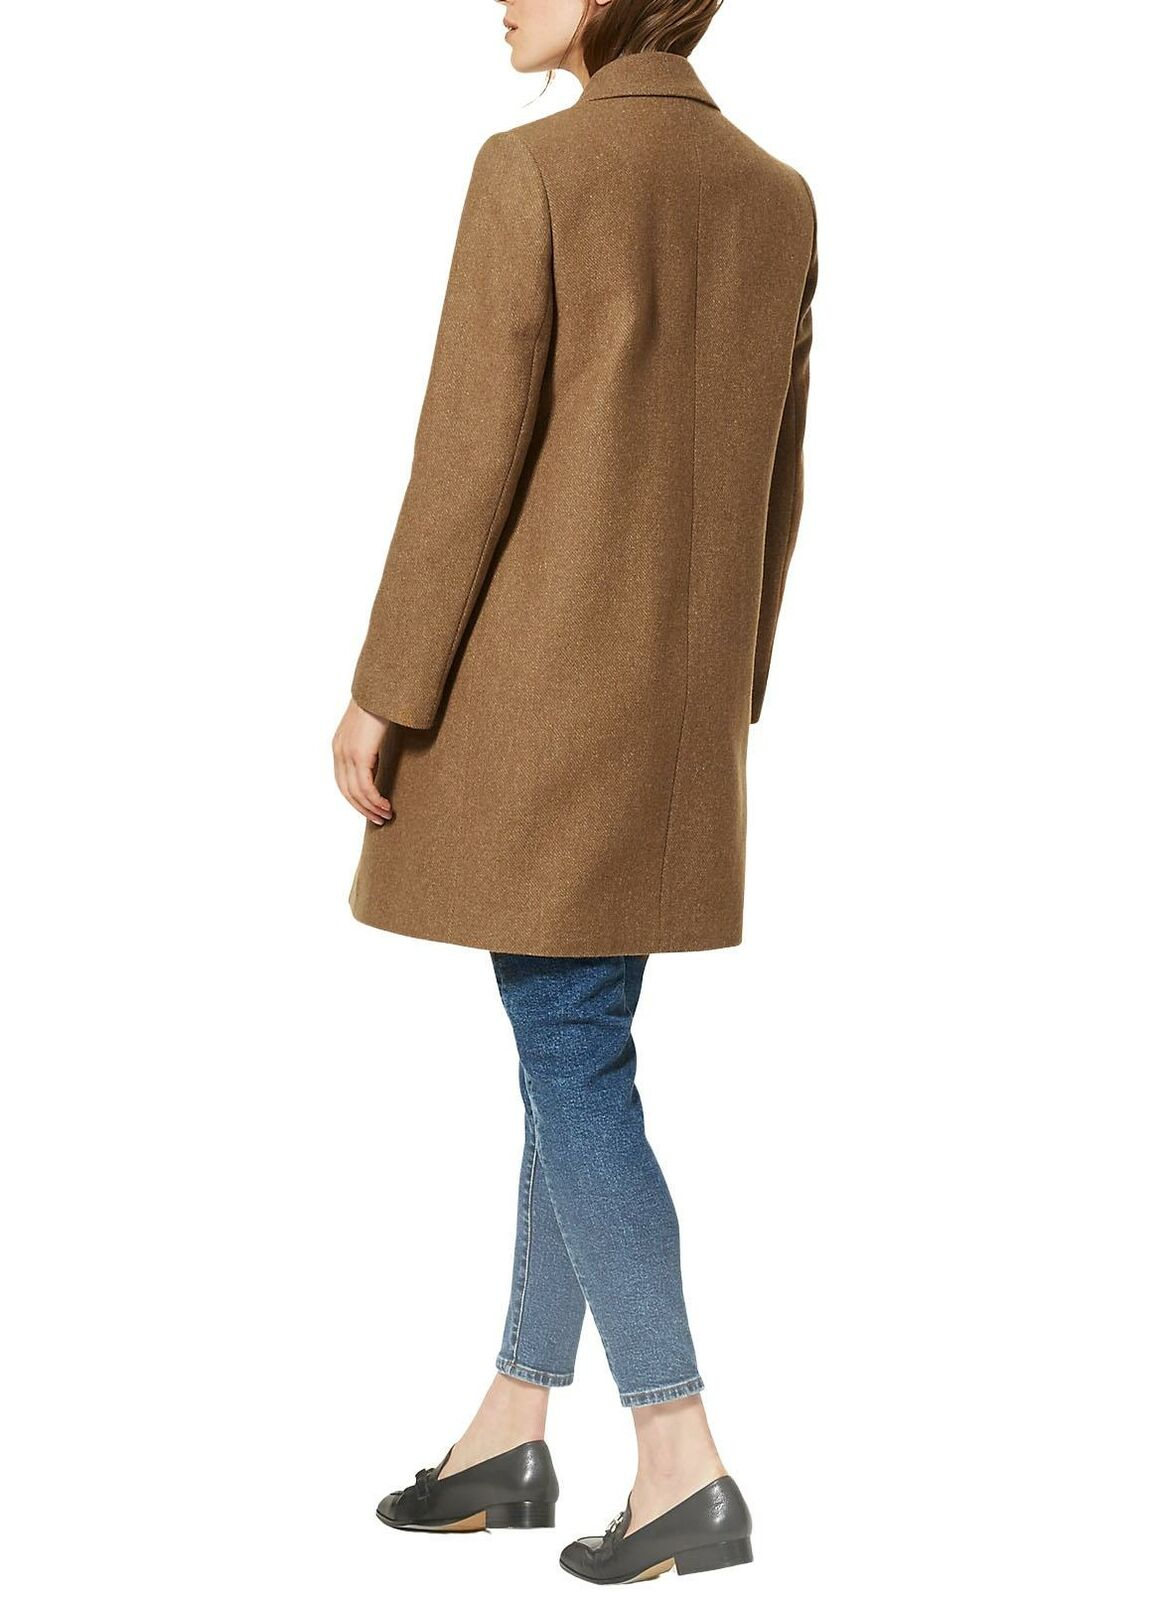 M-amp-S-Wool-Blend-Single-Breasted-Pink-Brown-Winter-Coat-Holly-Willoughby-Size-6-24 thumbnail 18